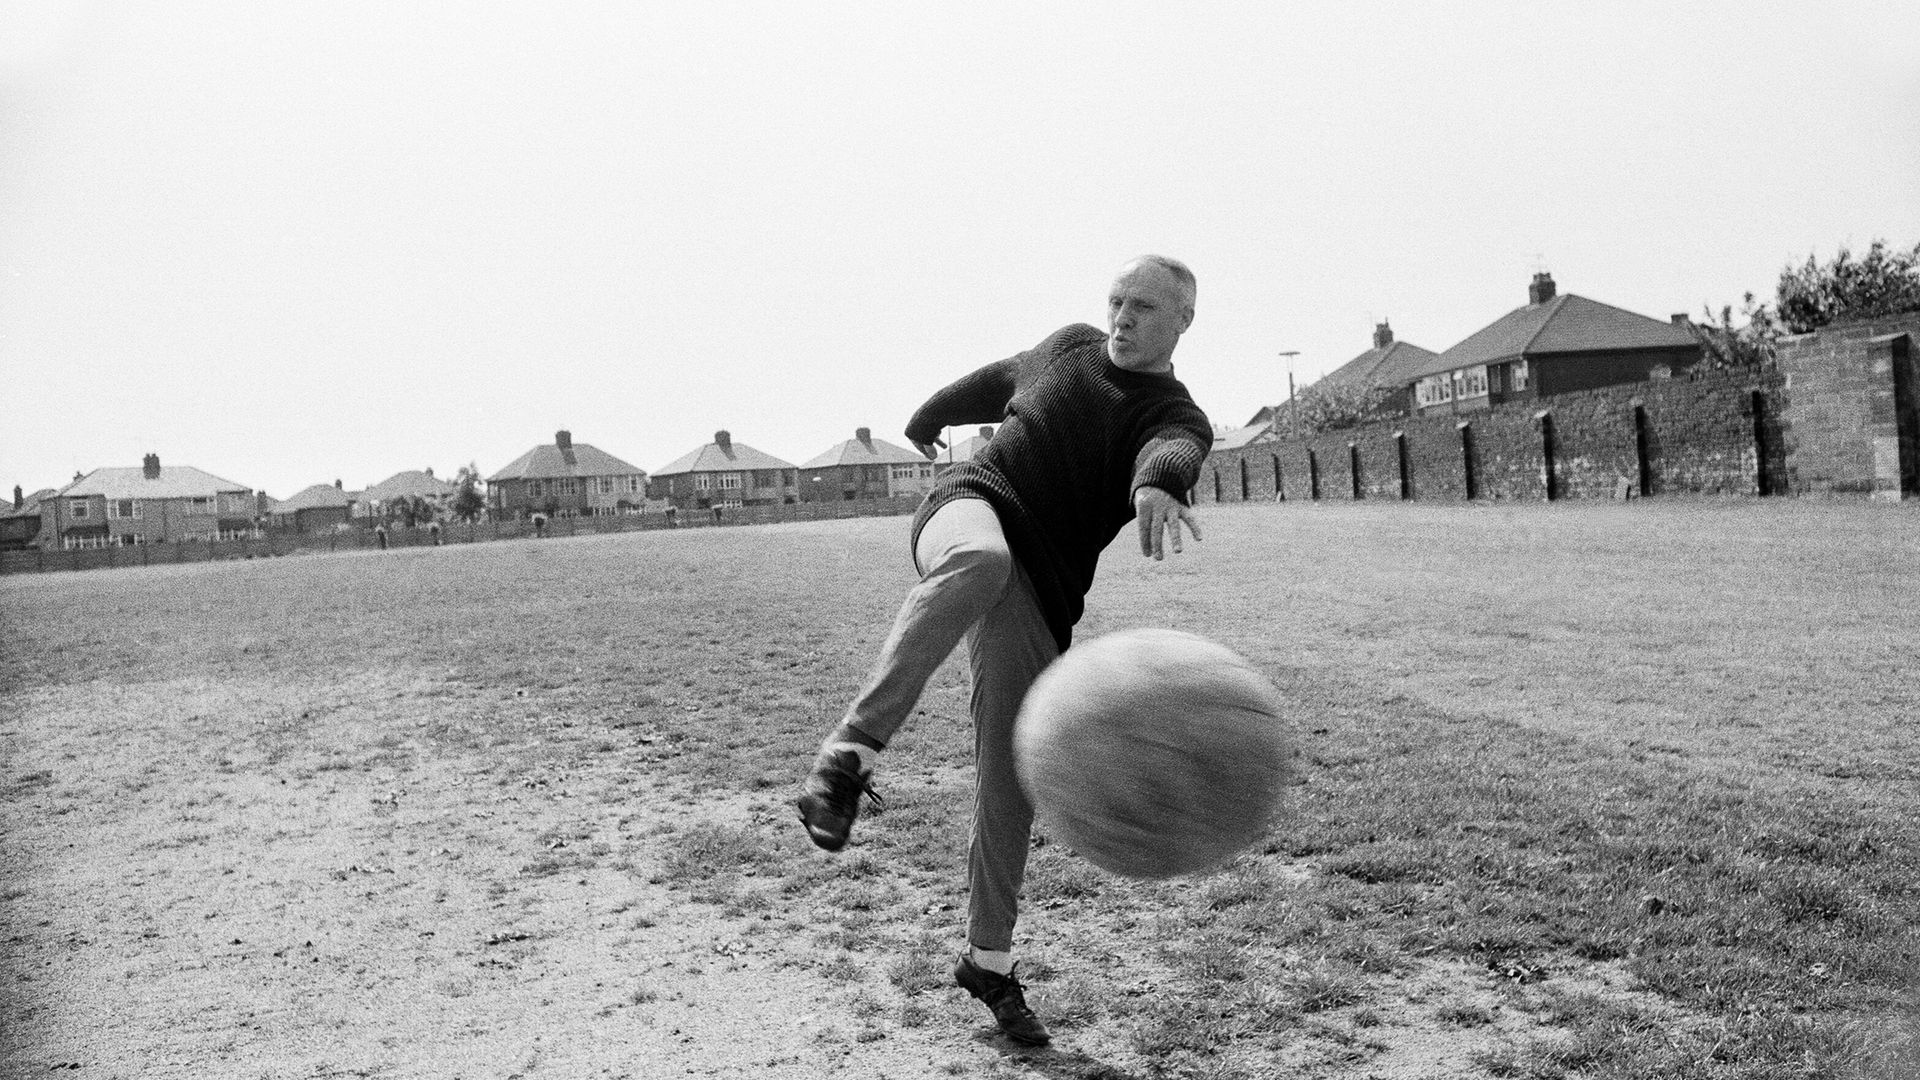 Liverpool manager Bill Shankly, aged 57, keeps himself fit by practicing his football skills at the club's training ground, 2nd June 1971. (Photo by Eddie Sanderson/Mirrorpix/Getty Images) - Credit: Getty Images